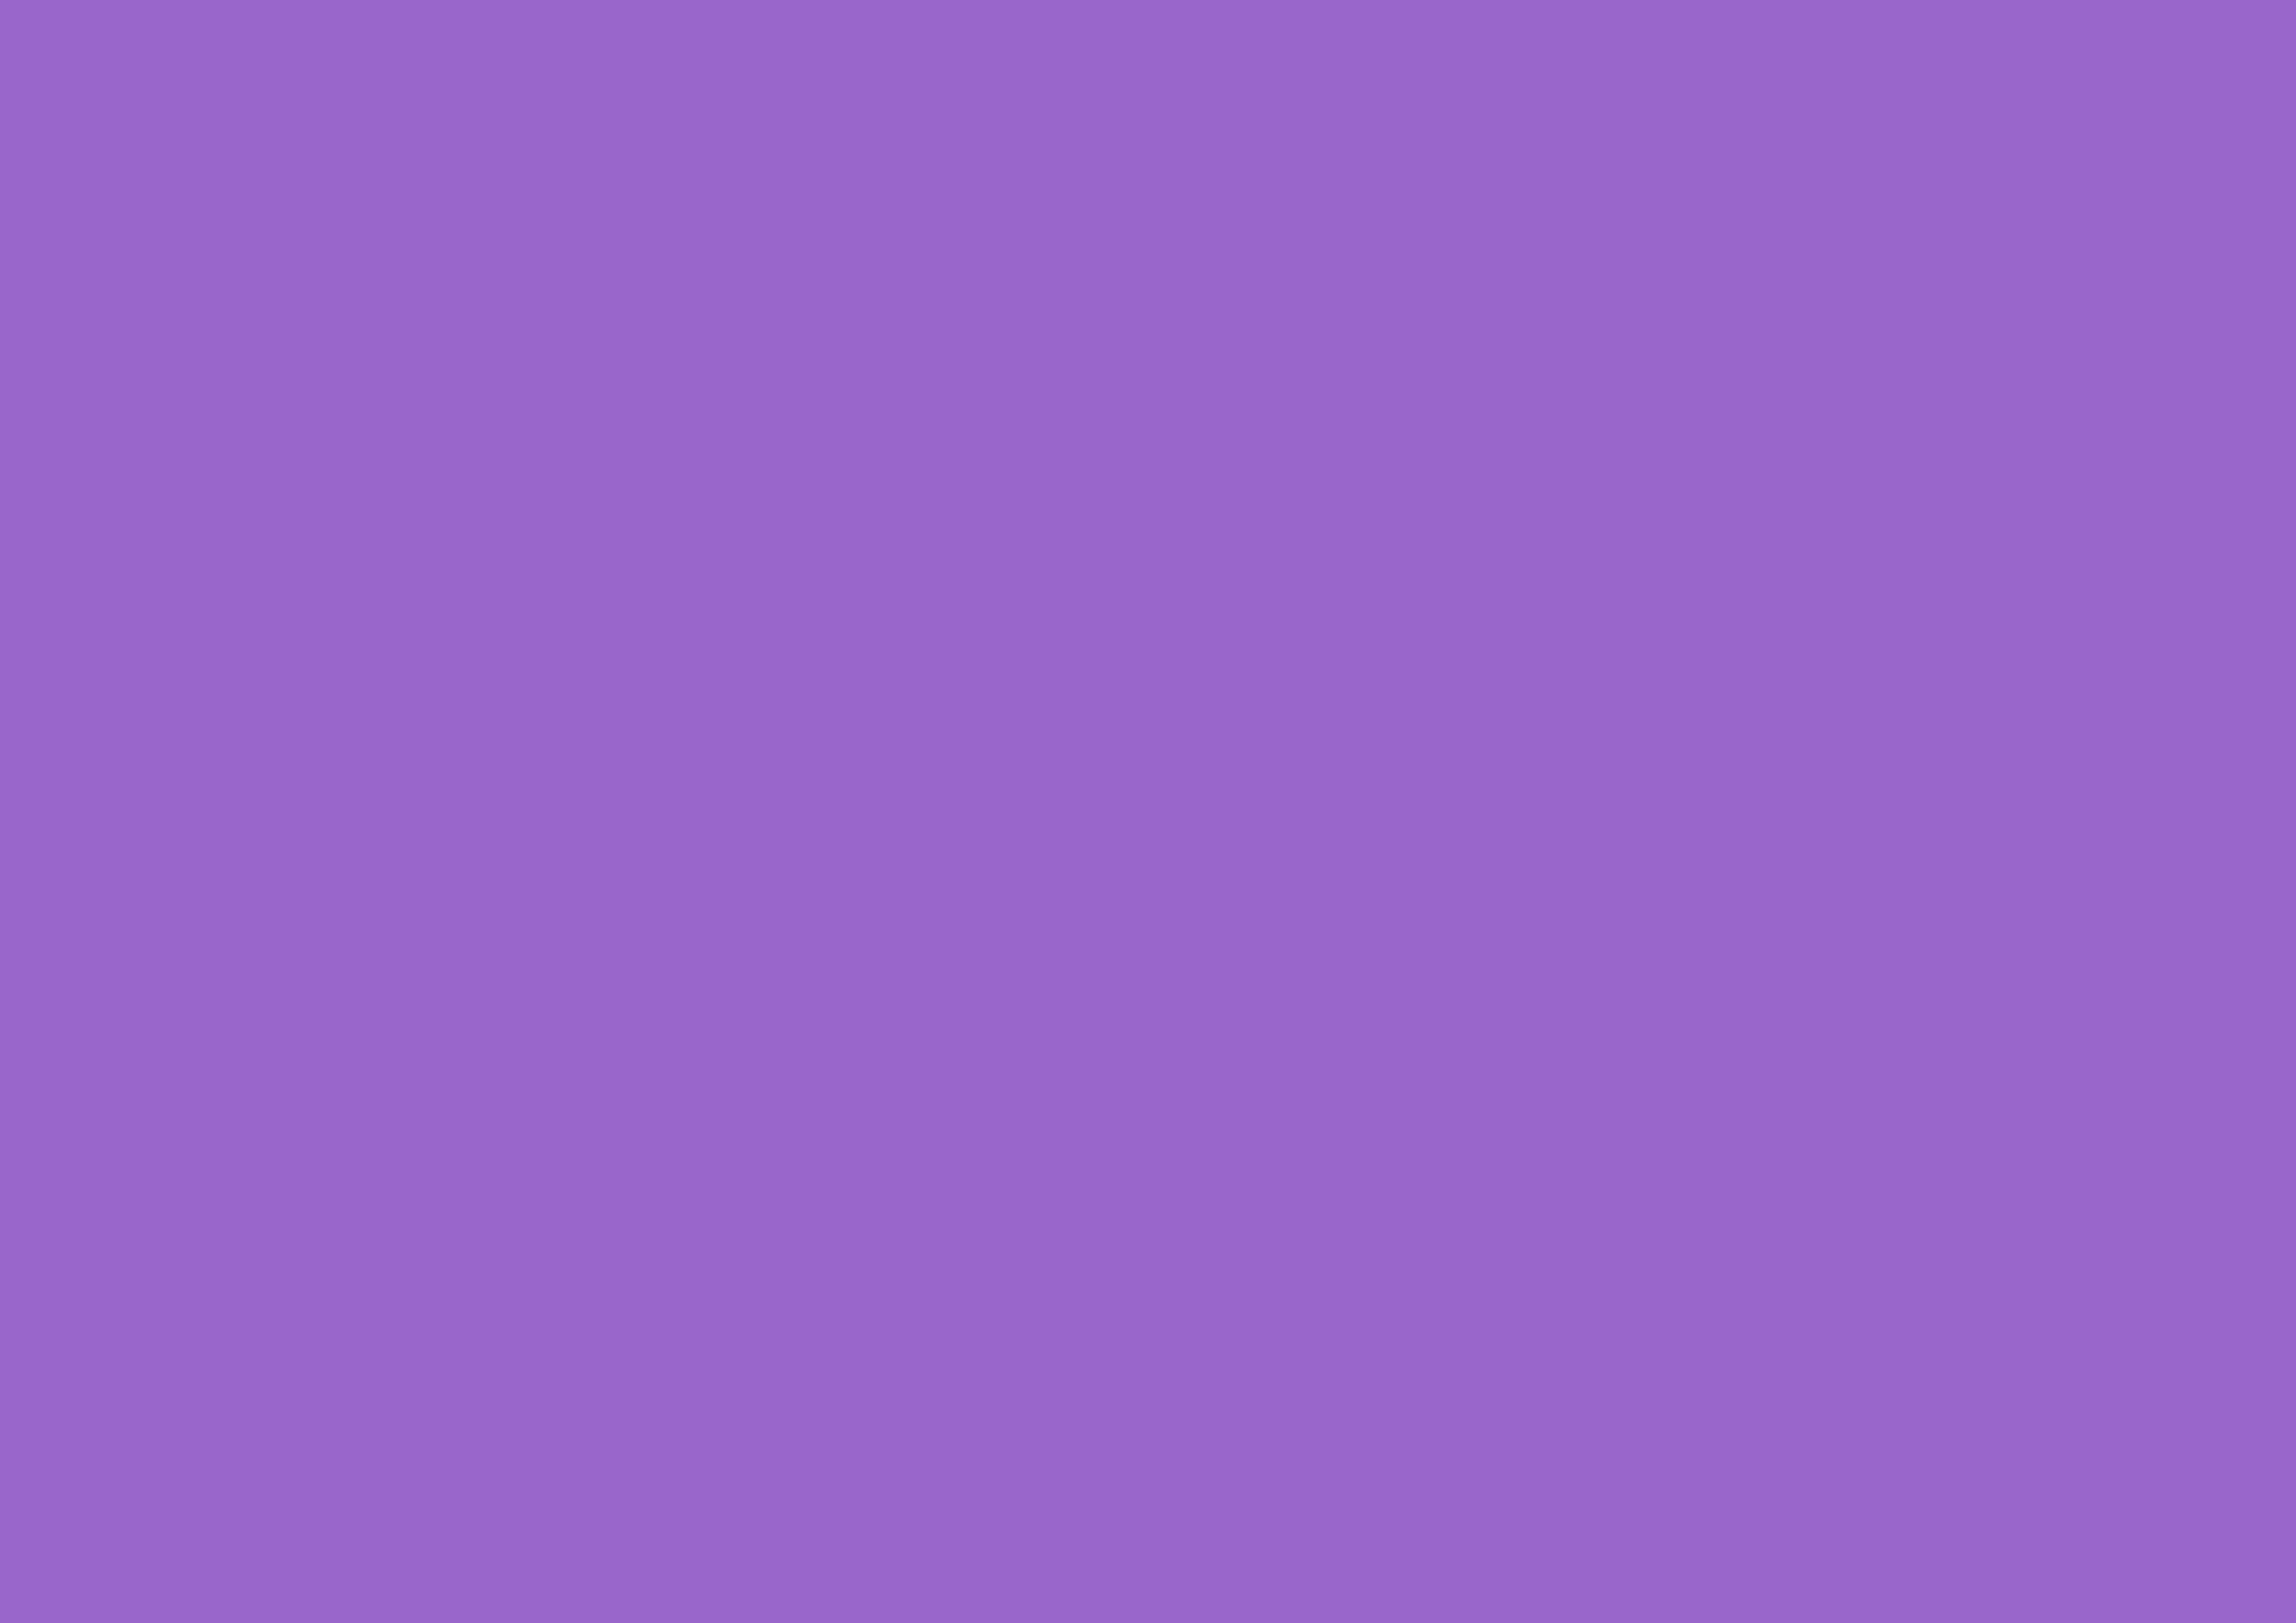 3508x2480 Amethyst Solid Color Background